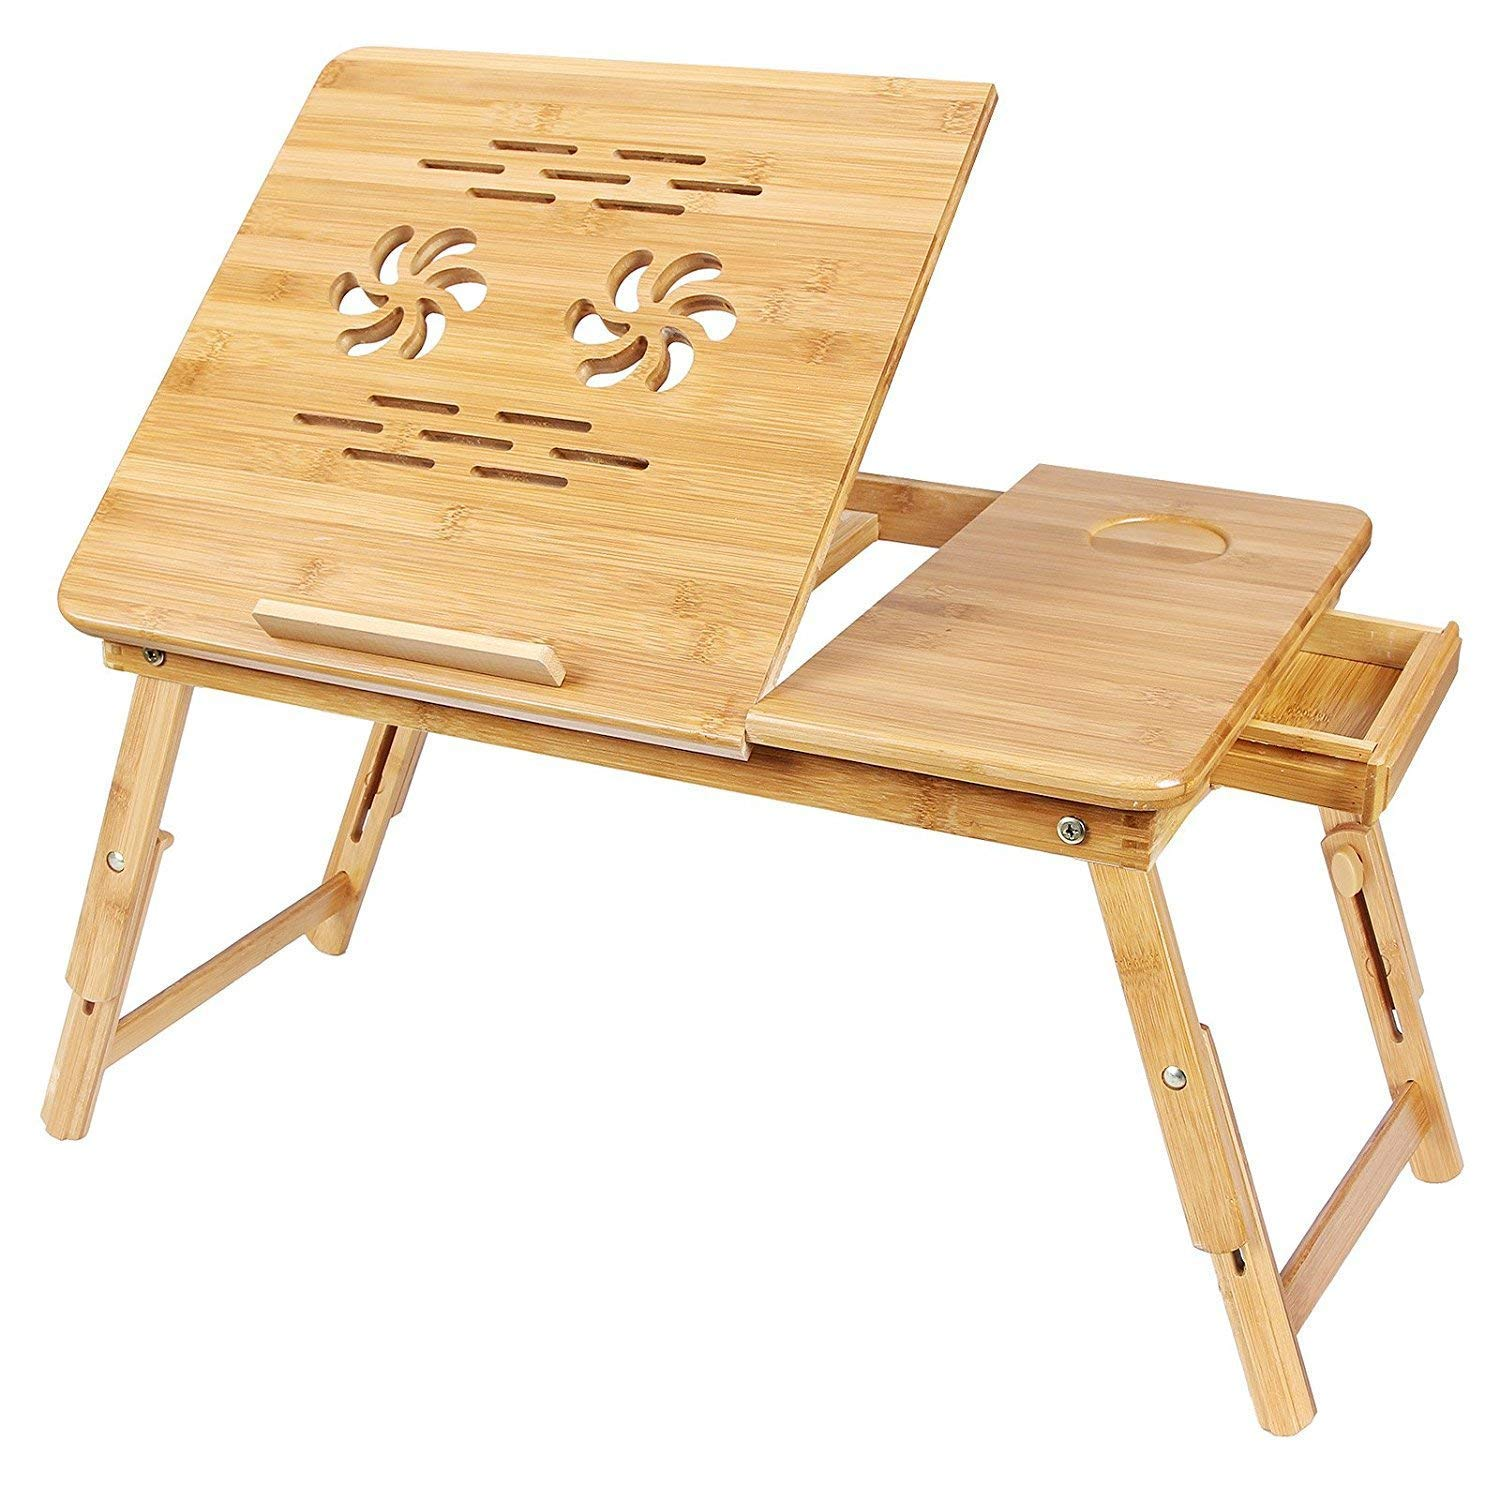 Multipurpose Wooden Laptop Table with Drawer Study Table